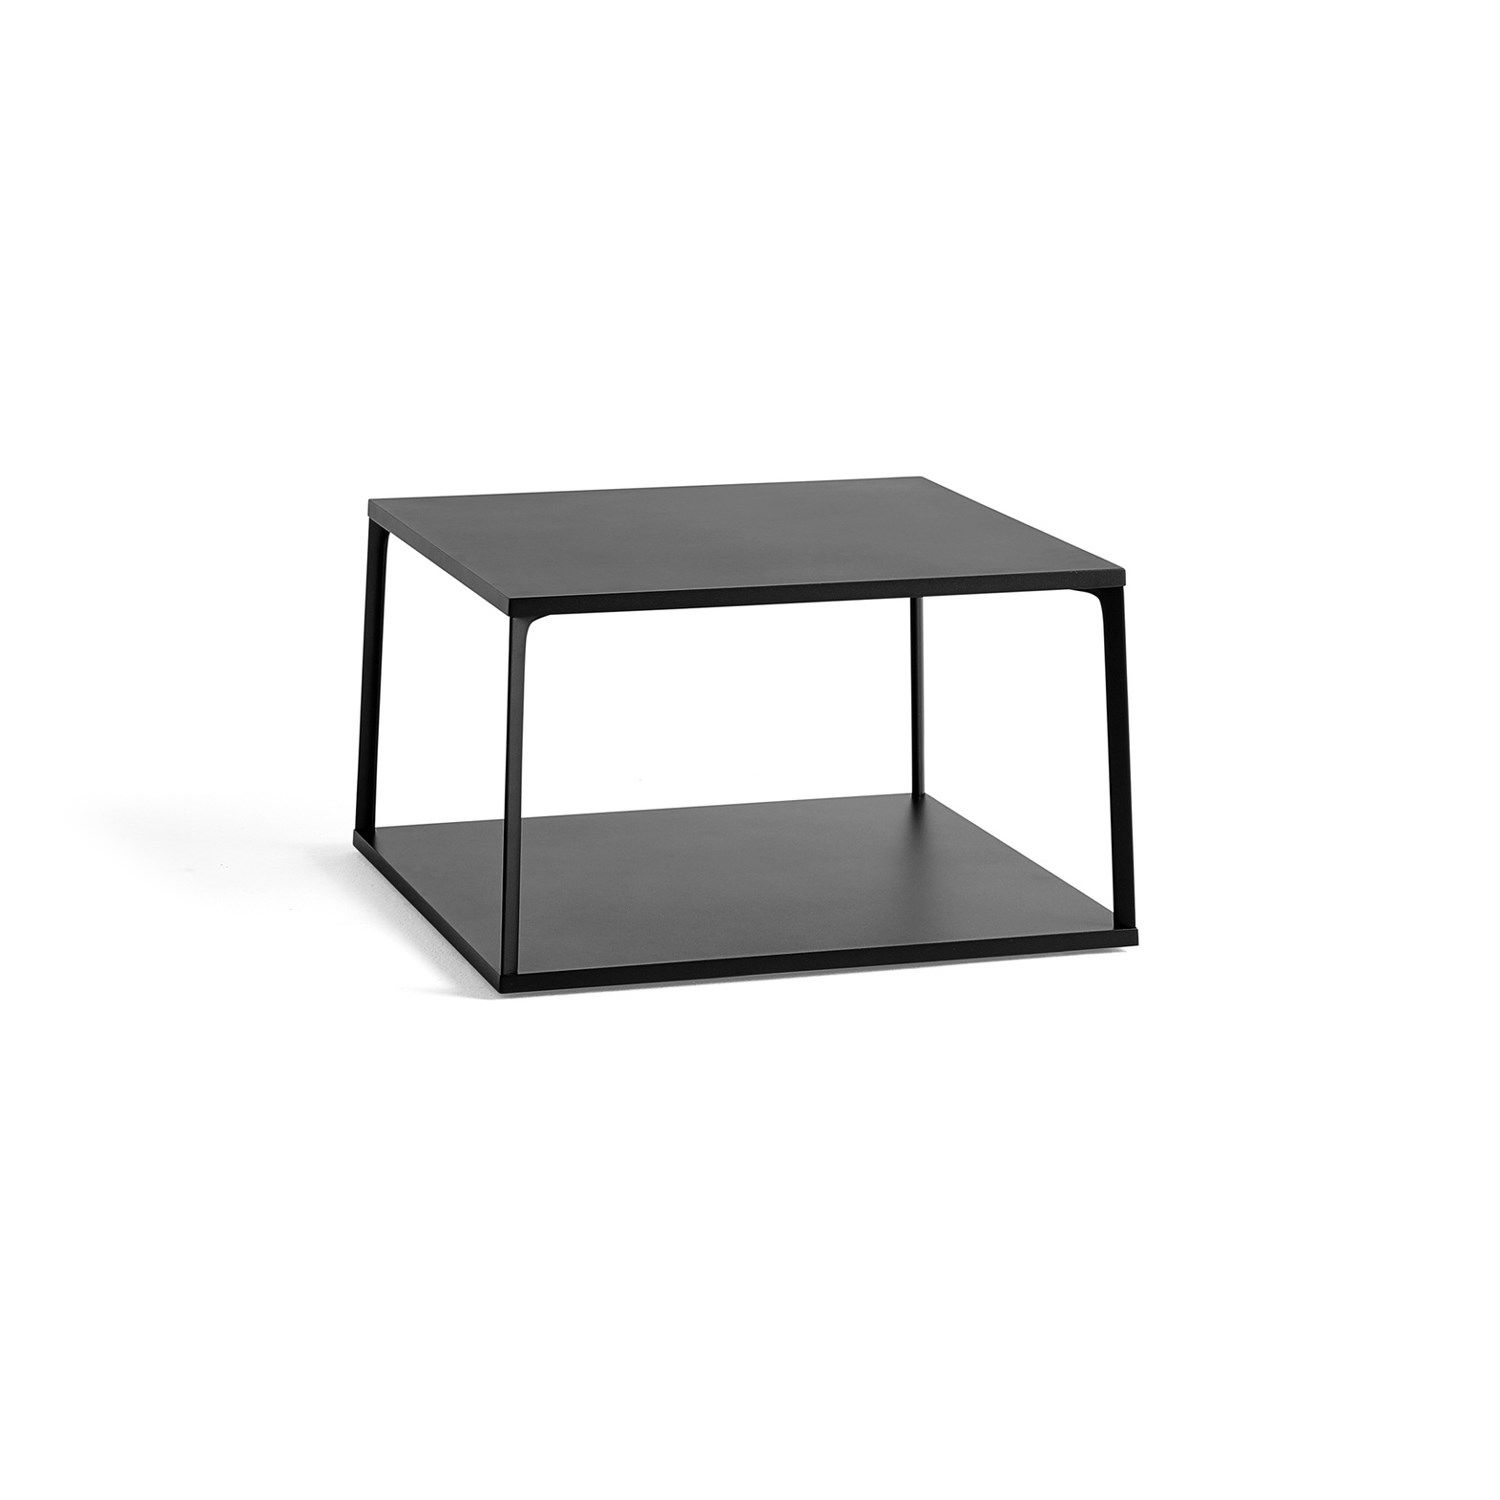 HAY - Sofabord - Eiffel Coffee Table Square - Sort